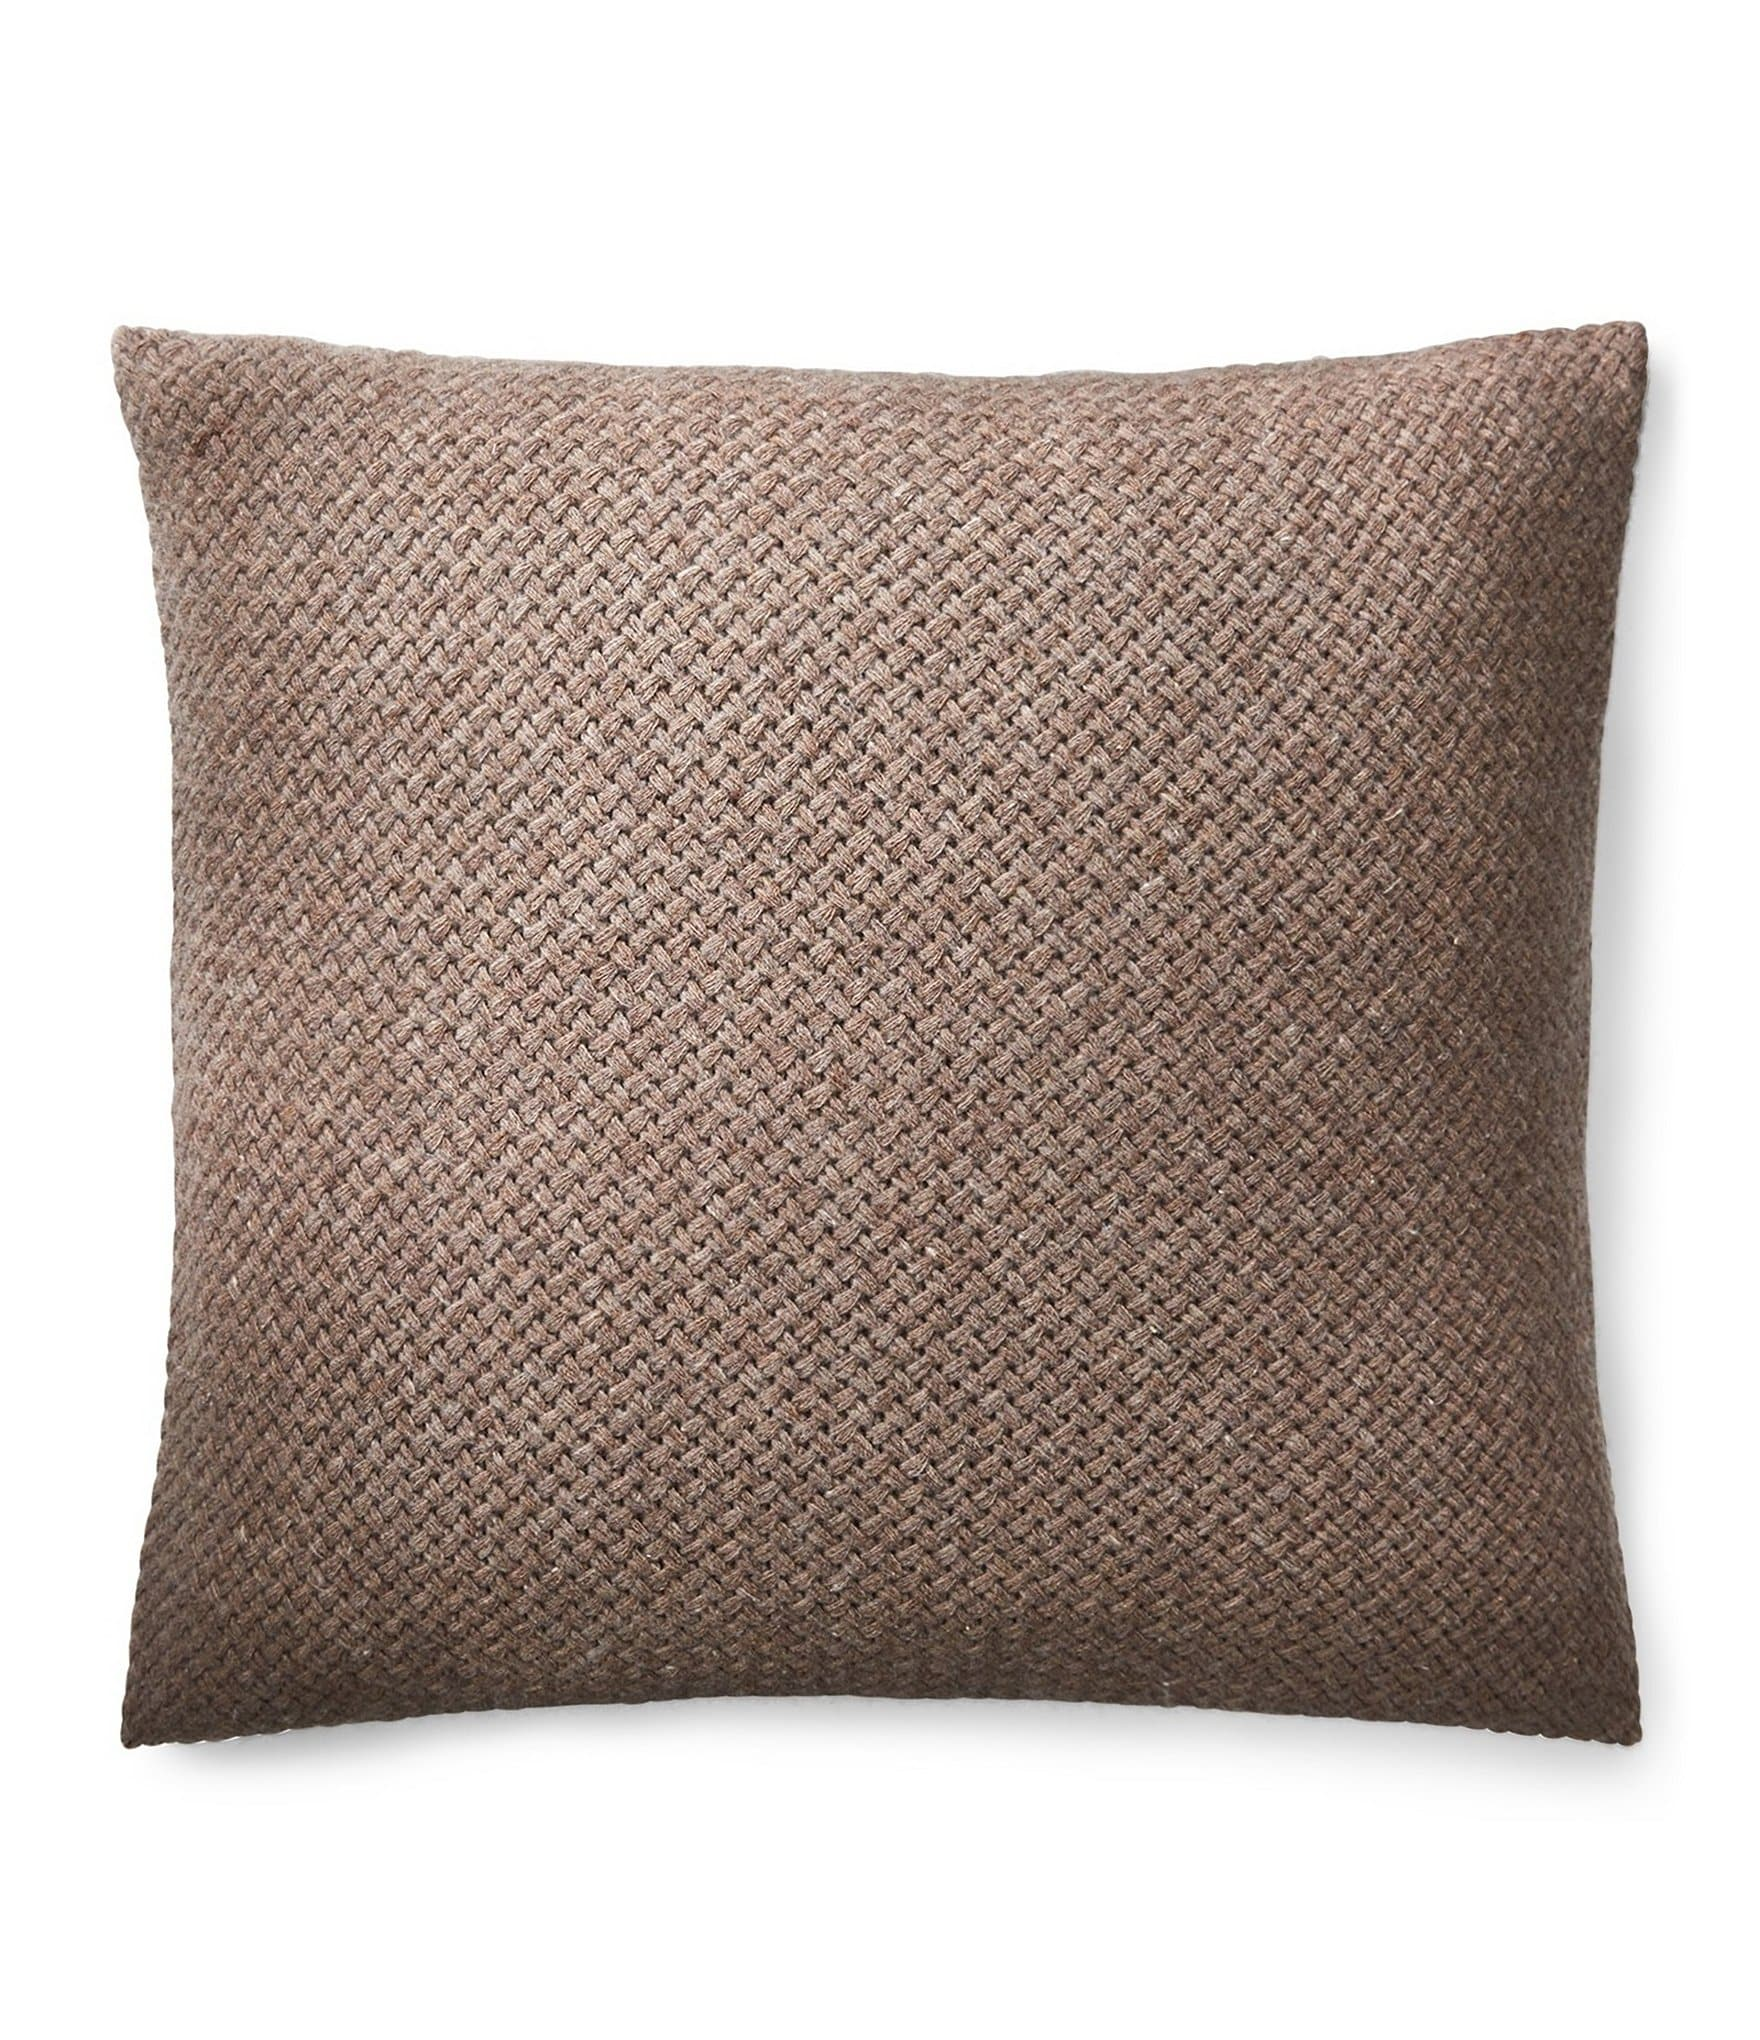 Ralph Lauren Modern Icons Collection Tylar Basketweave Lambswool Square Feather Pillow Dillards